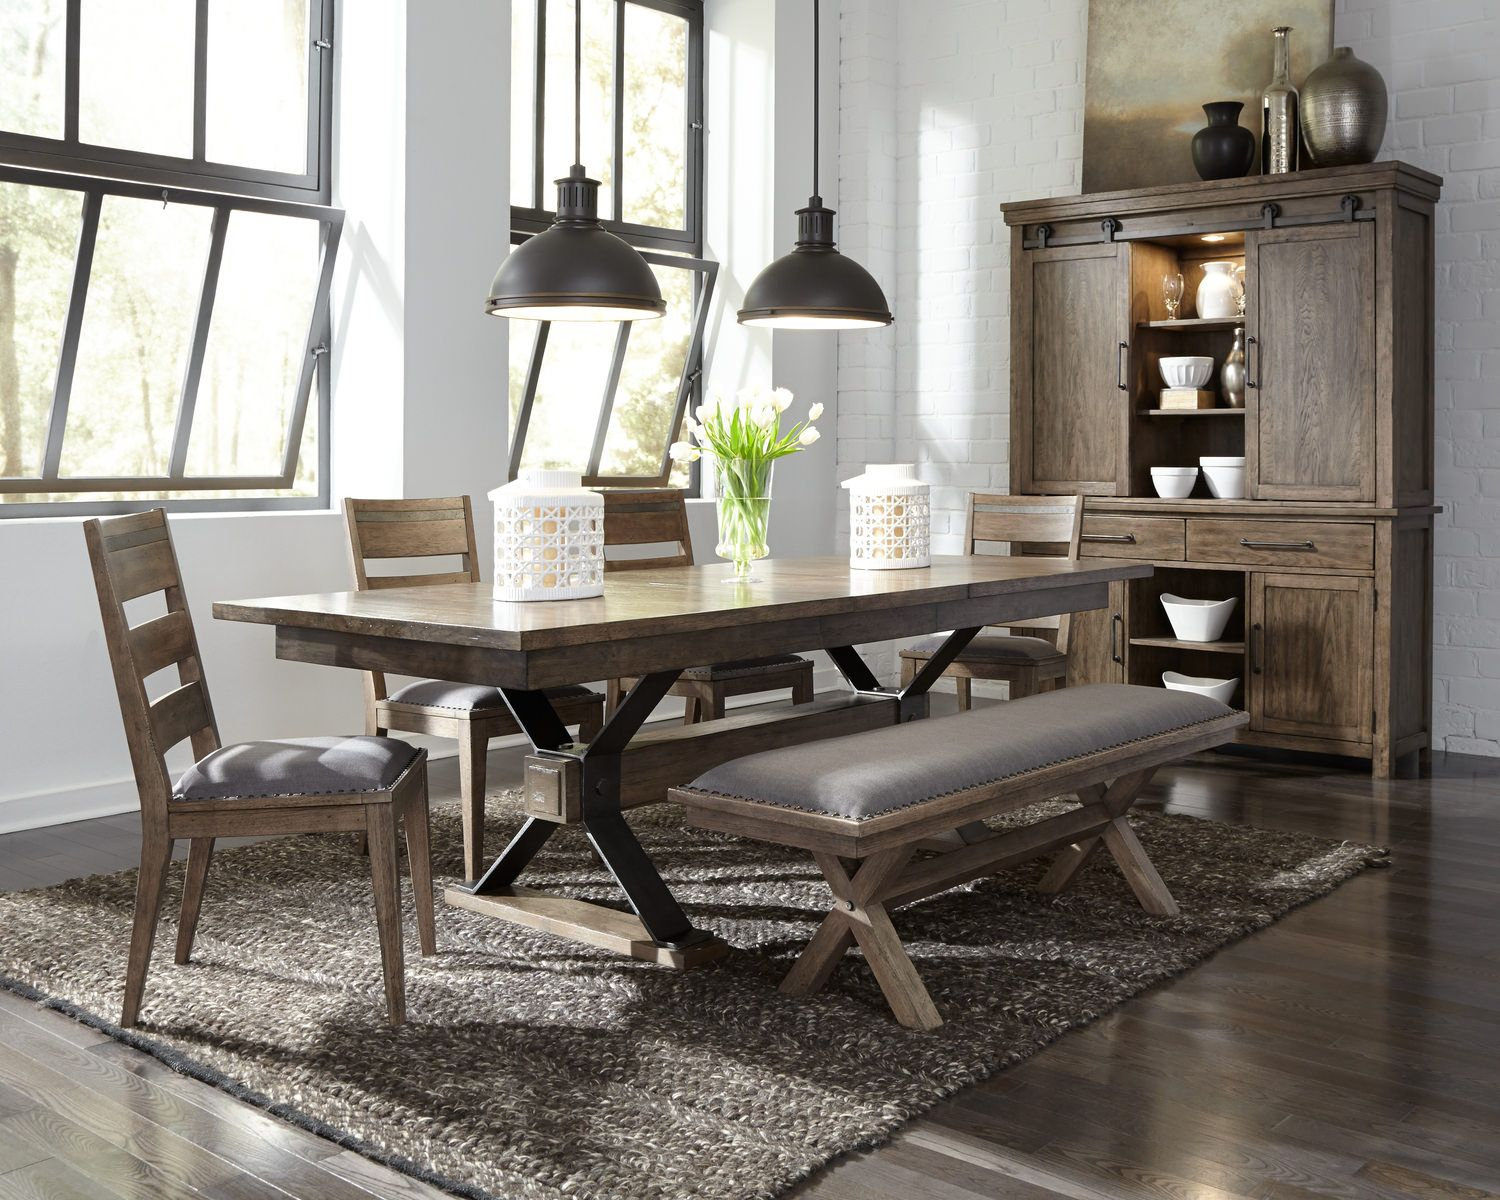 Sonoma Road Trestle Table With 4 Chairs And Bench Furniture